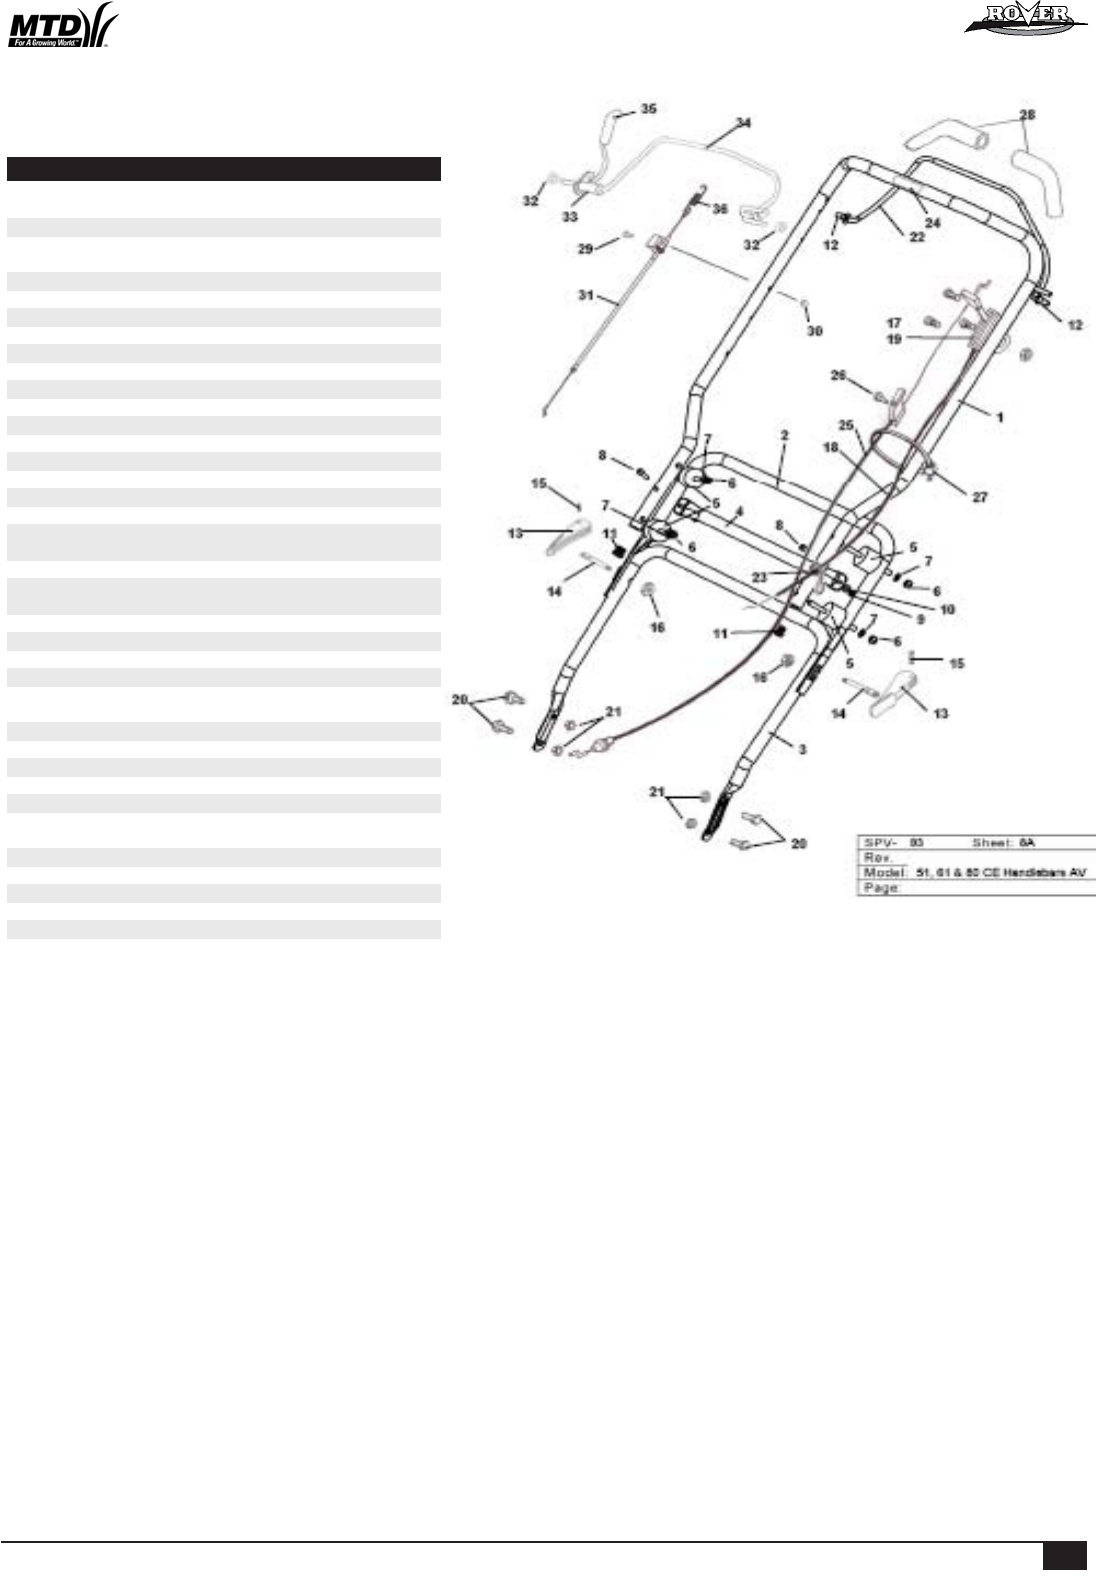 page 91 of rover lawn mower 51 user guide manualsonline com rh lawnandgarden manualsonline com Moon Rover NASA Rover